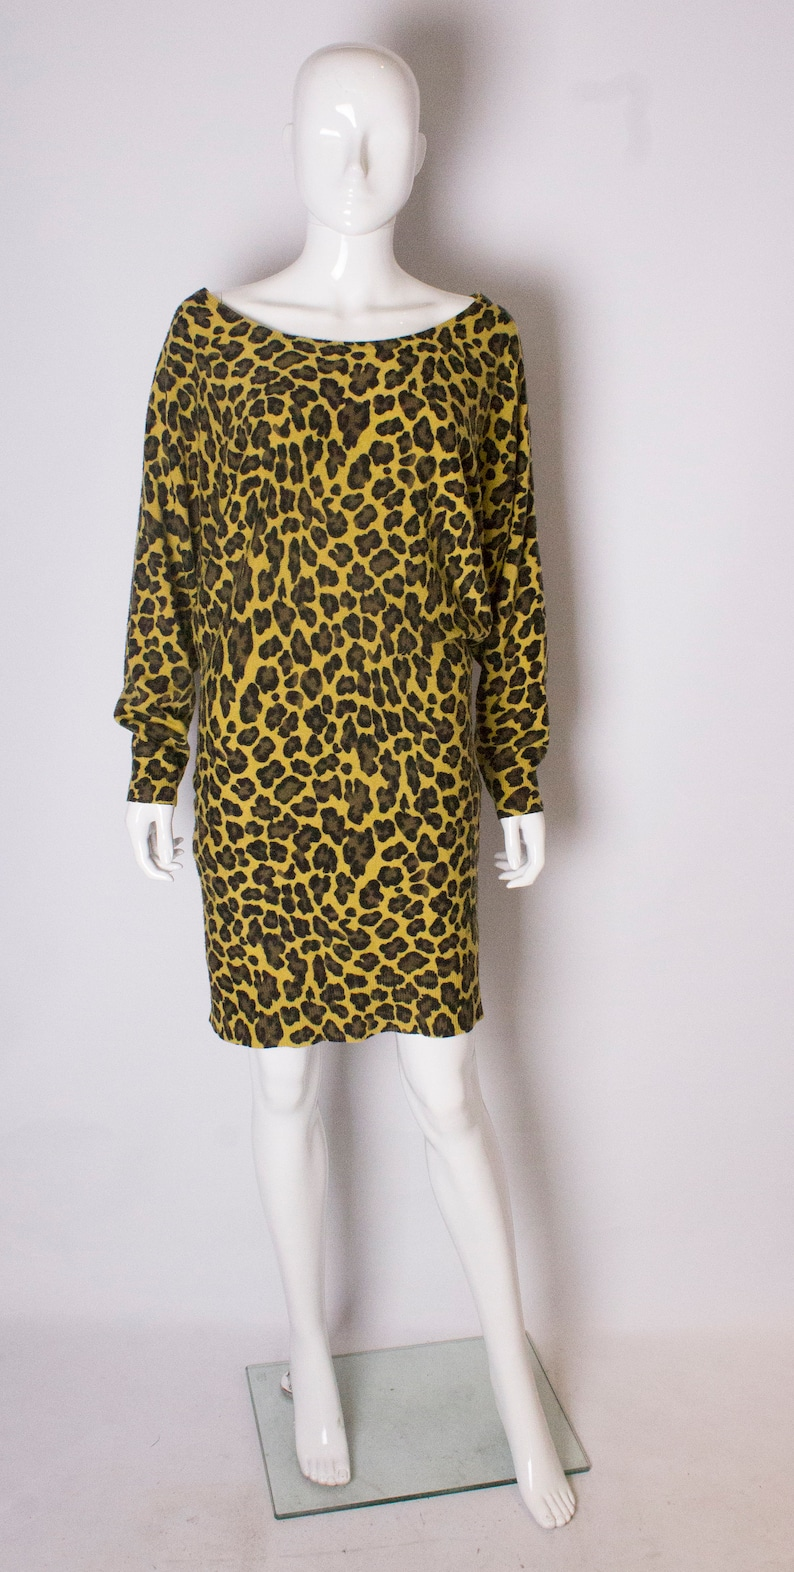 cce5a4226e A Vintage 1980s Betsey Johnson Animal print Sweaterdress